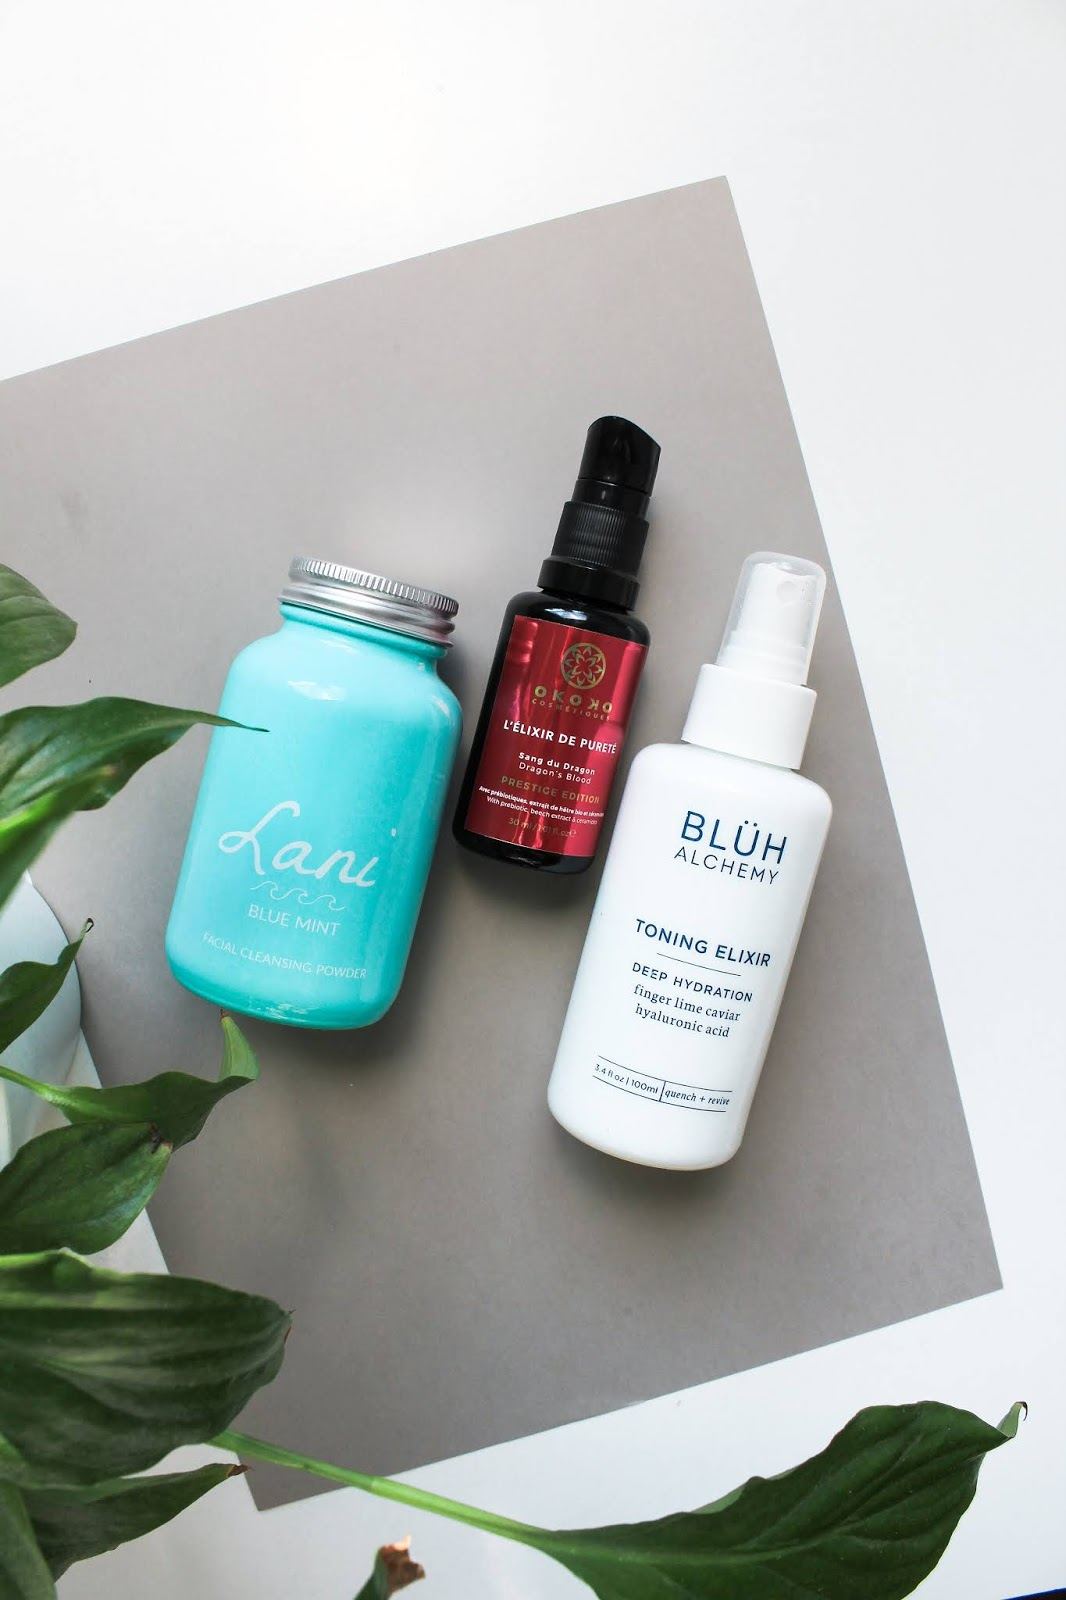 Lani Blue Mint Facial Cleansing Powder, Okoko Cosmetiques Dragon's Blood Serum, Bluh Alchemy Toning Elixir